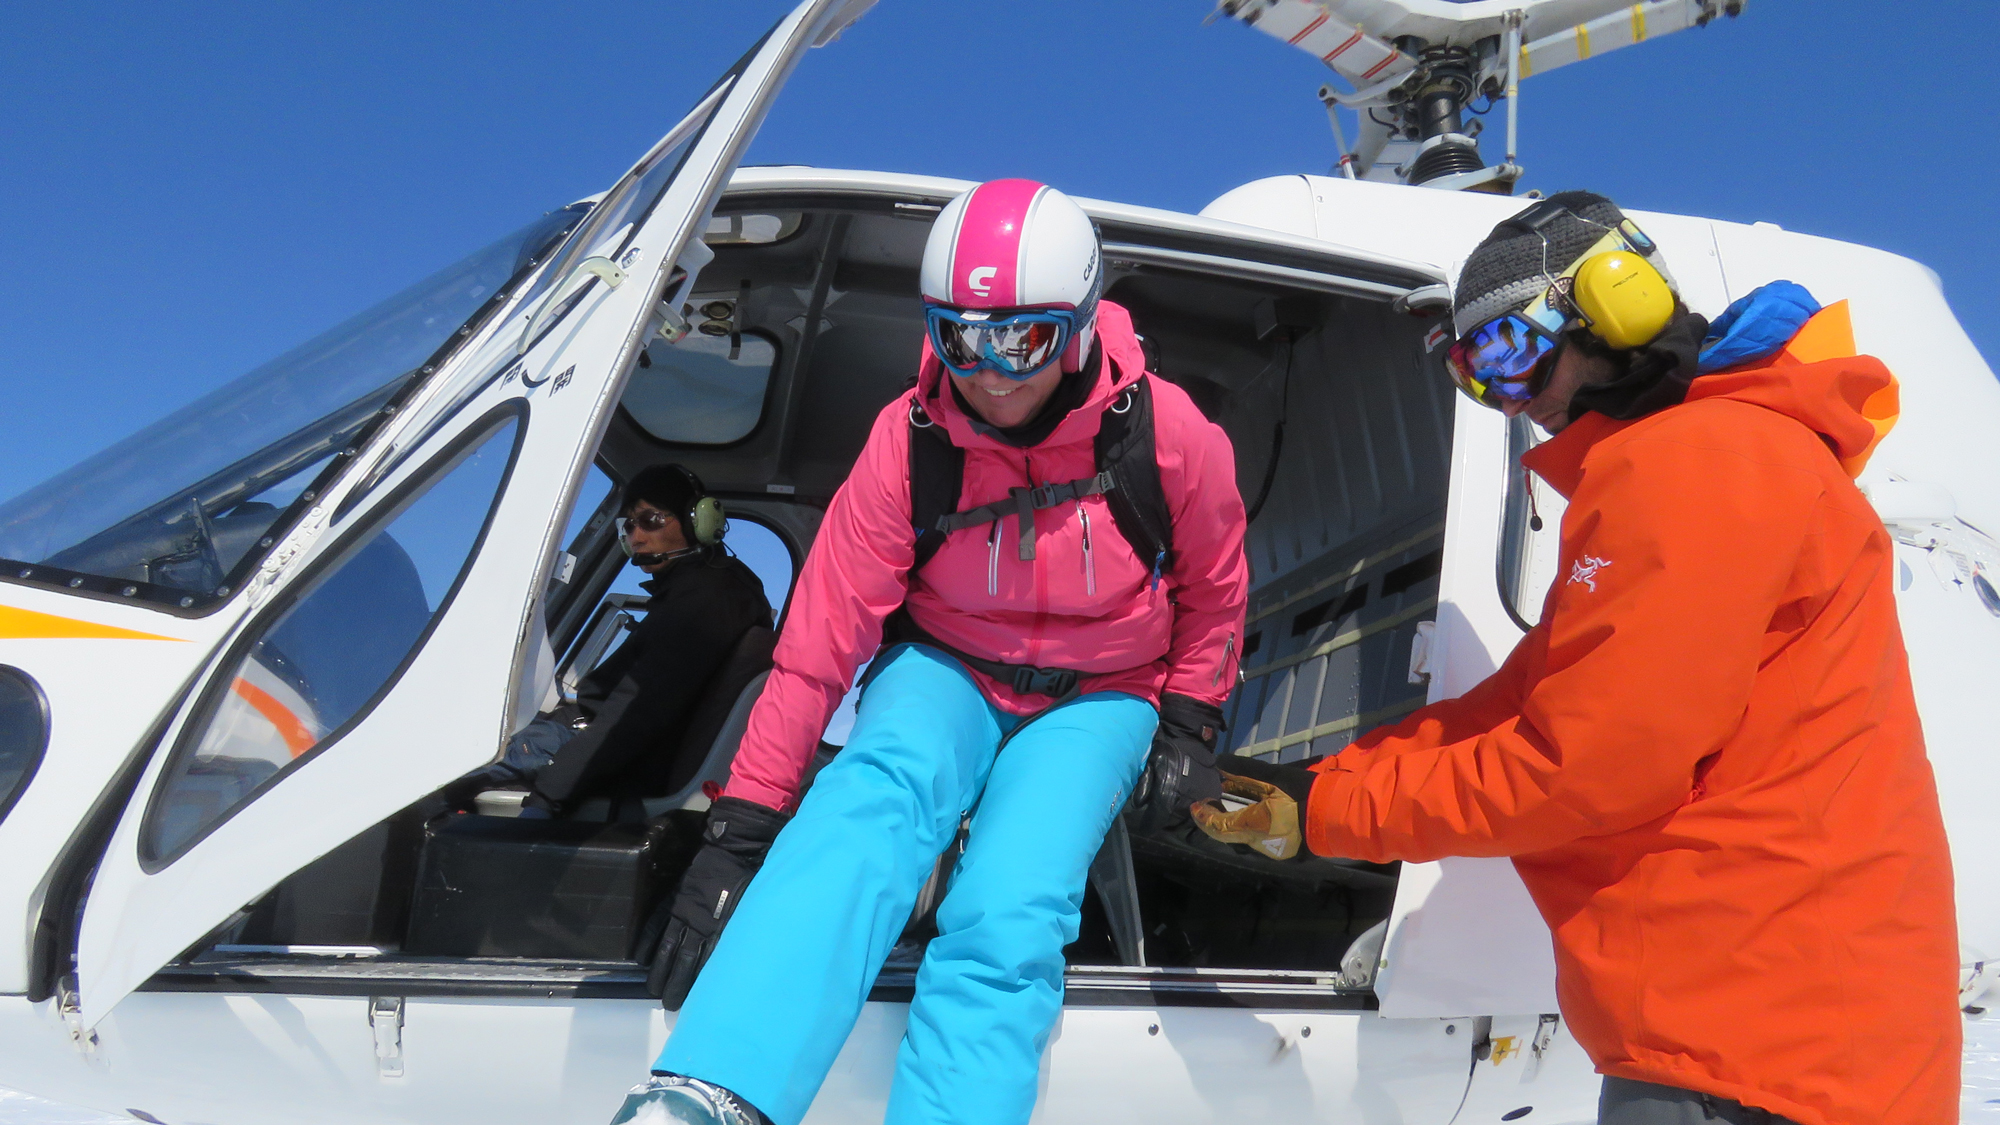 Heli skiing on Shiribetsu. It was great wearing stretch fabric to make getting in and out of the helicopter easier. Not sure why the guide thought I wanted to hold his hand?!